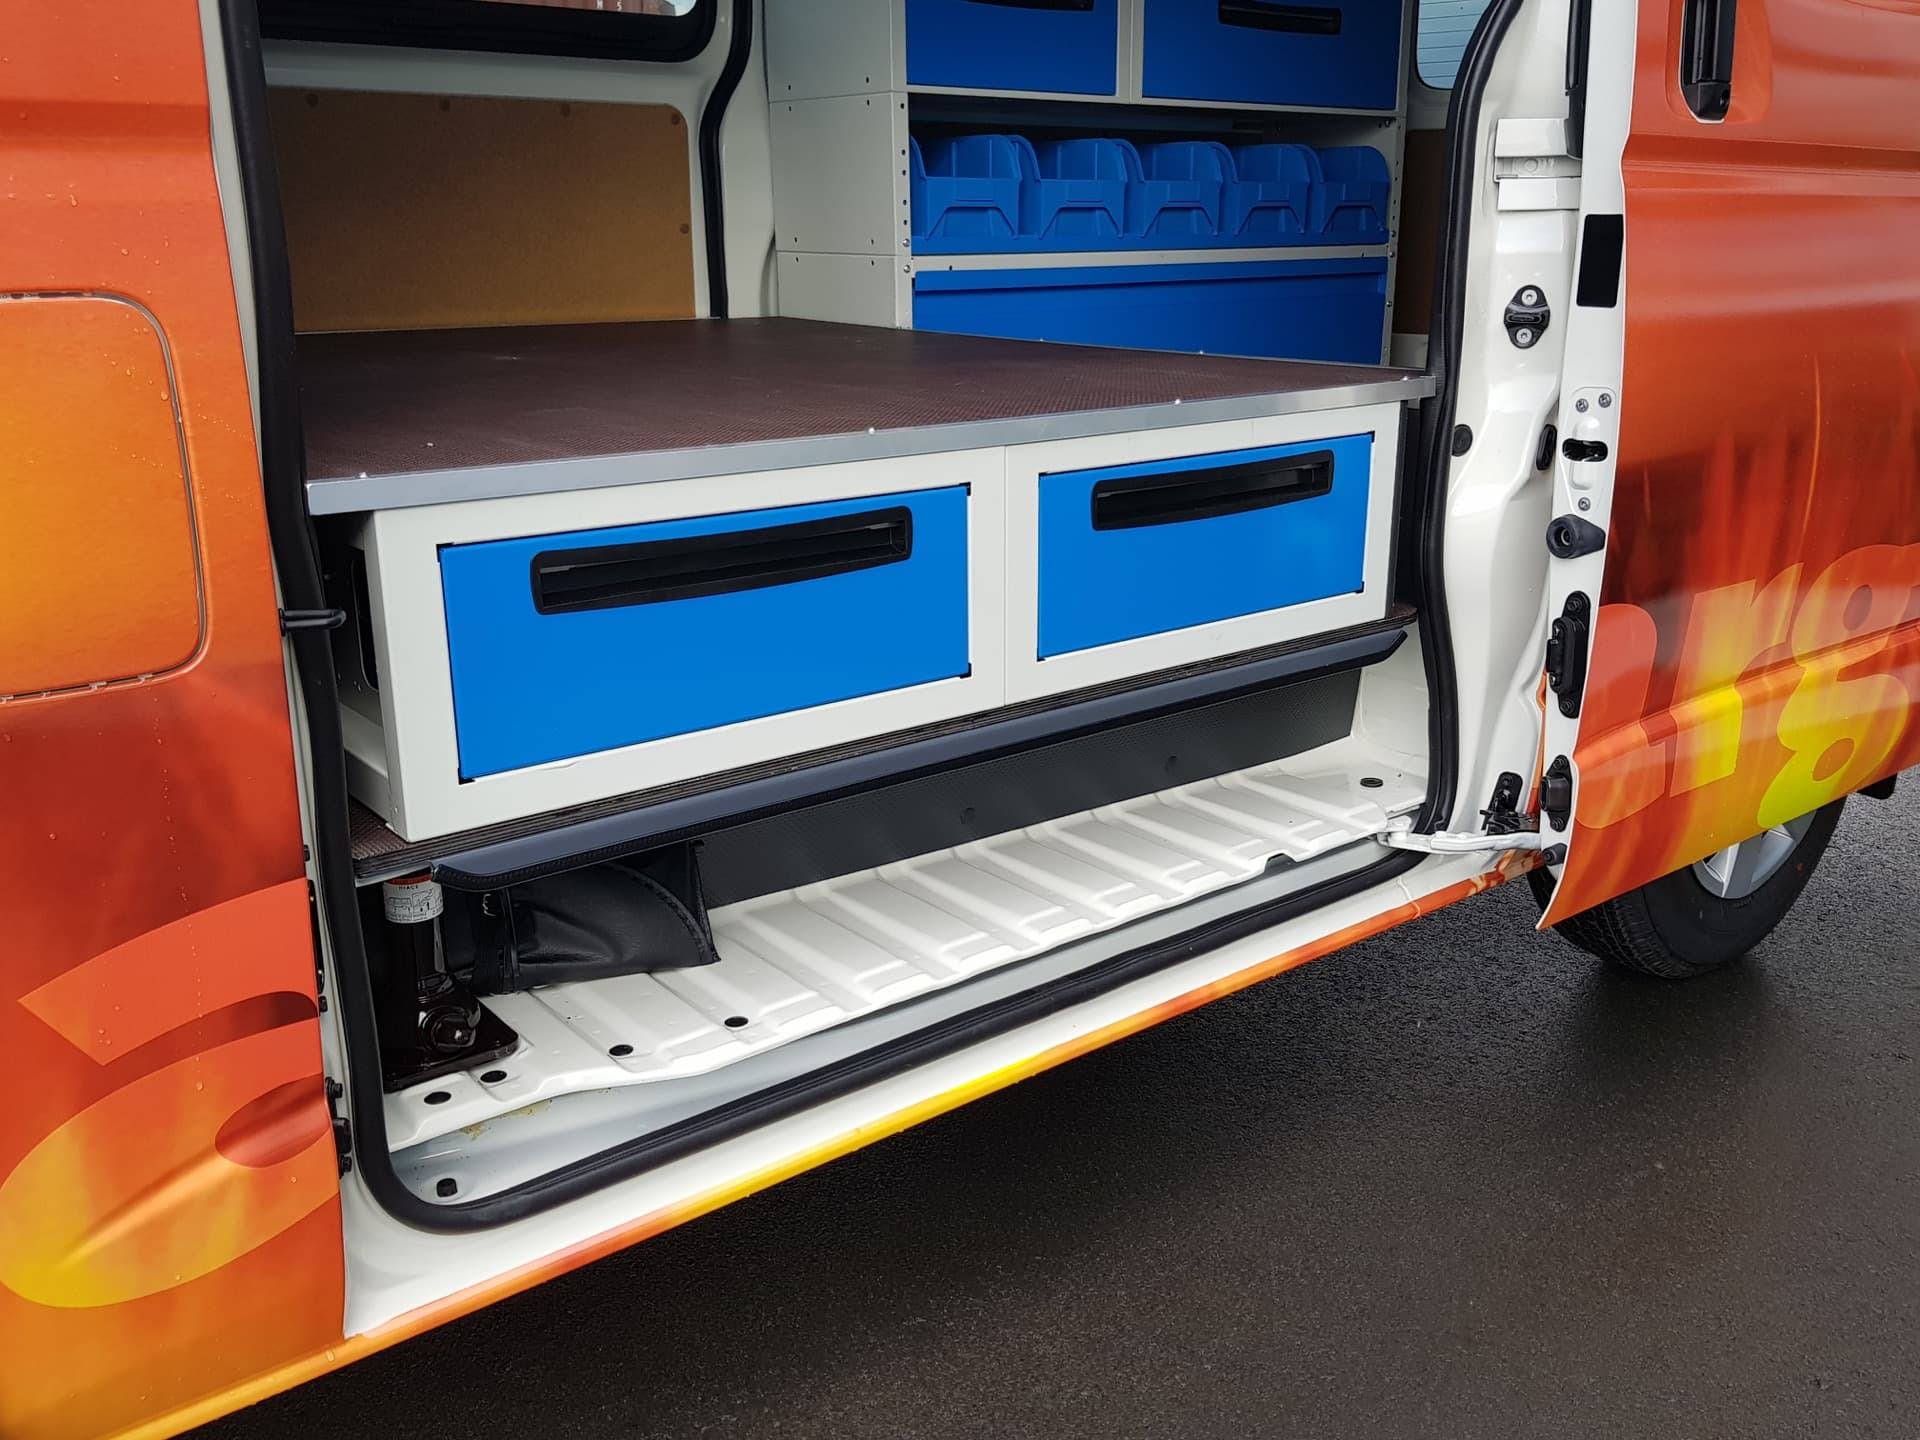 Van with drawers and workspace